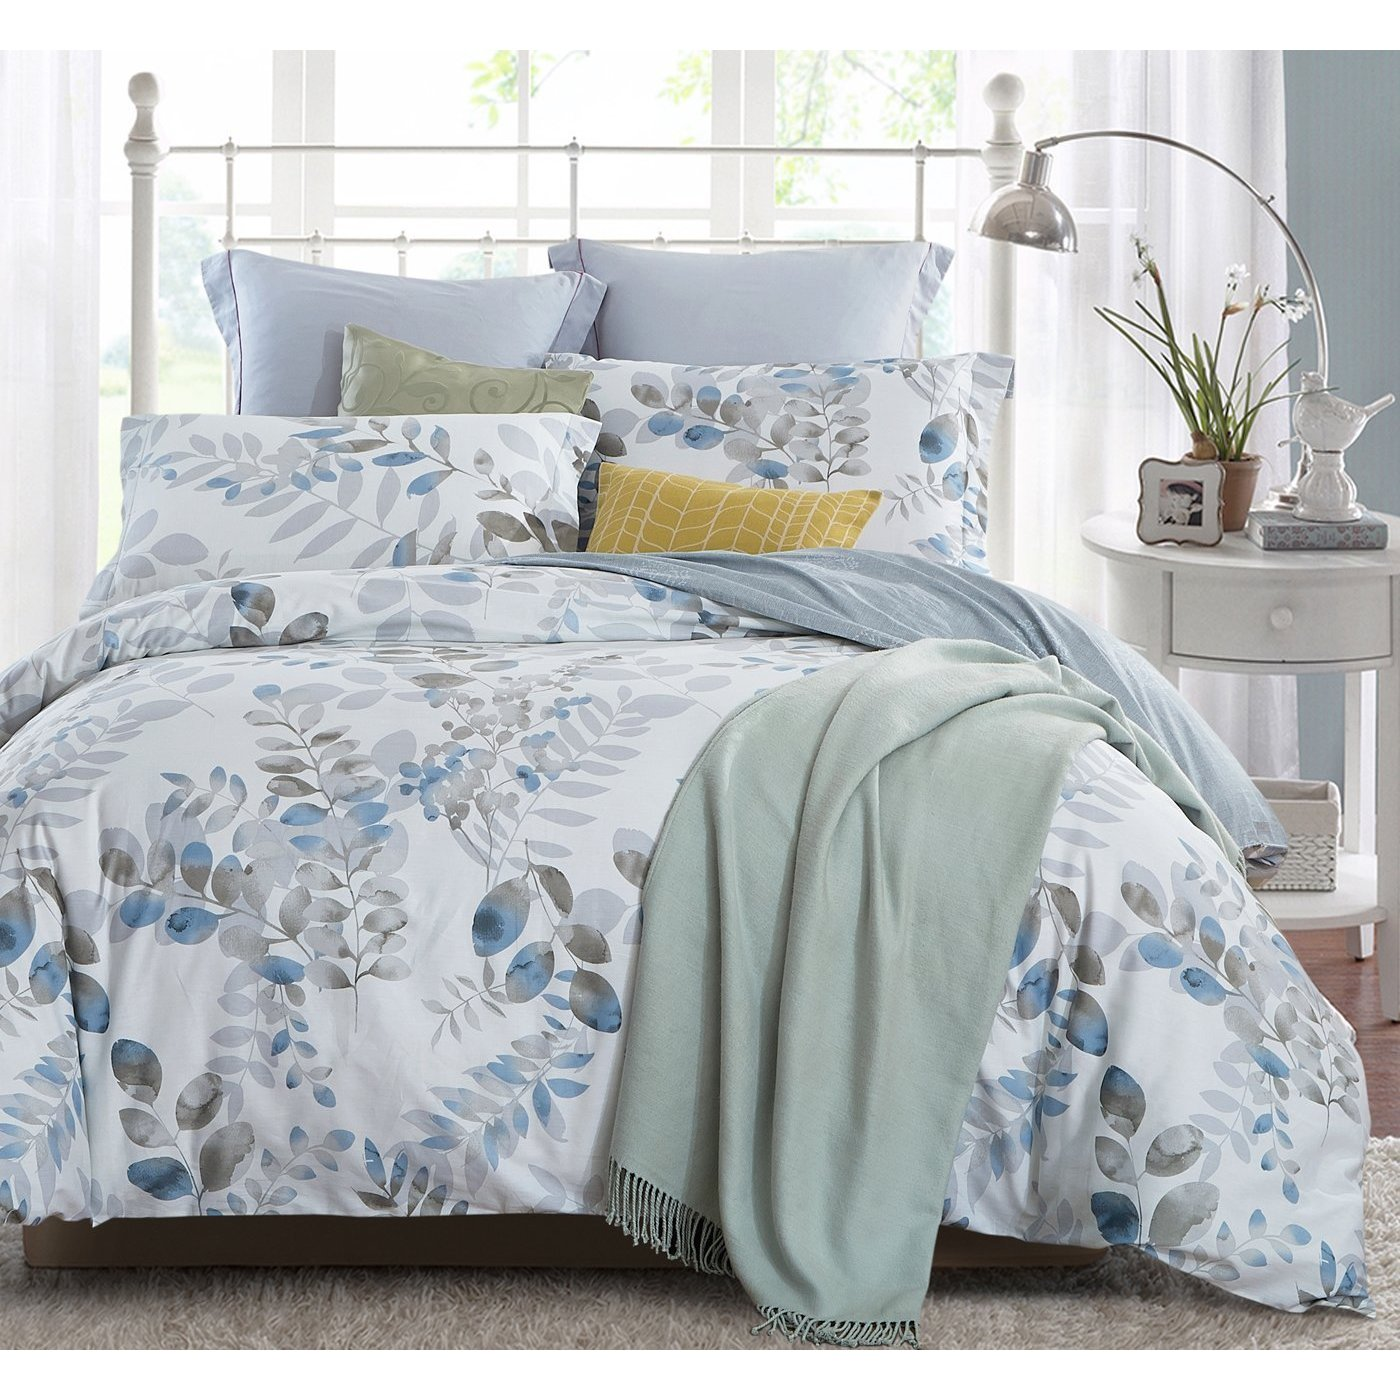 Word Of Dream 3 Piece Cotton Fl Leaves Duvet Cover Set Free Shipping Today 19601206